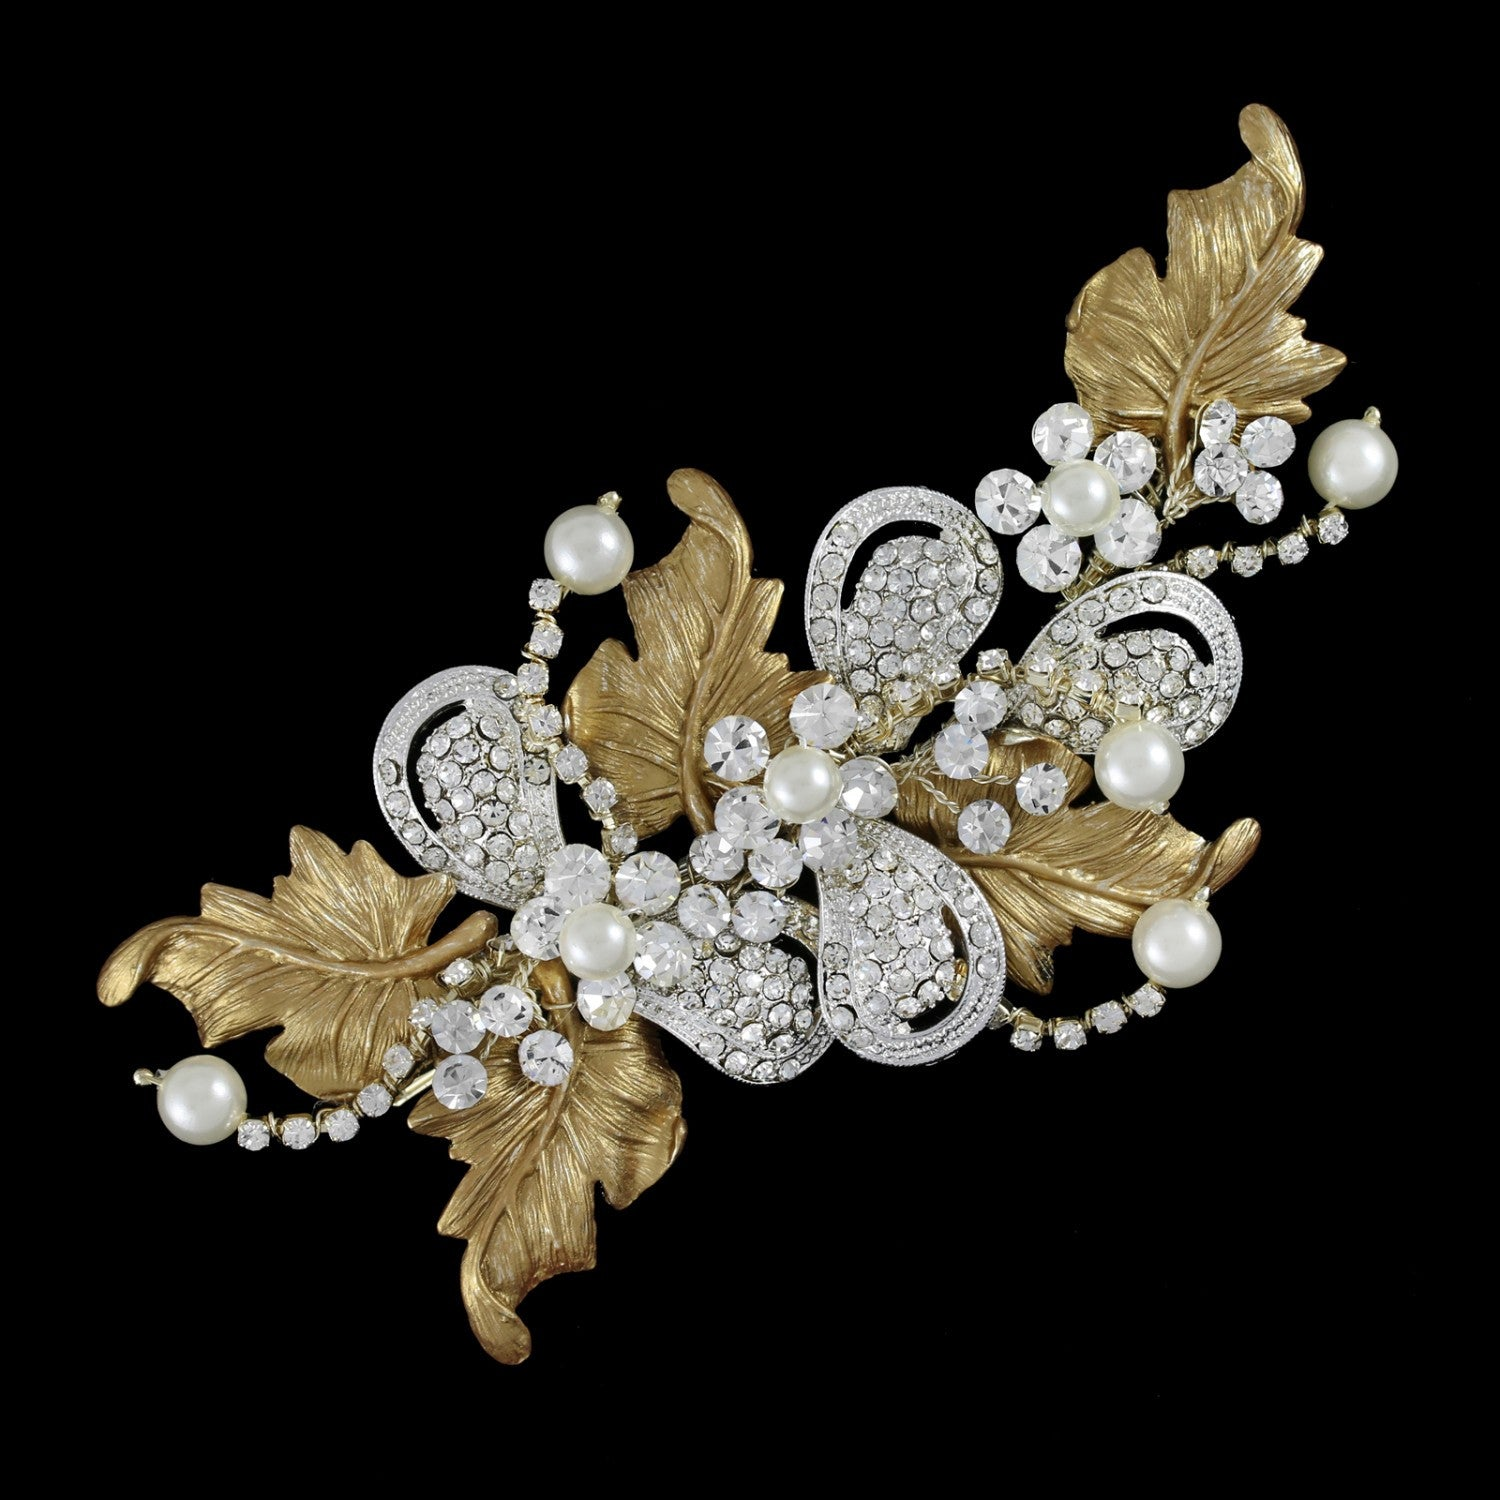 Marine Bridal Headpiece - Hair Accessories - Headpieces - Roman & French